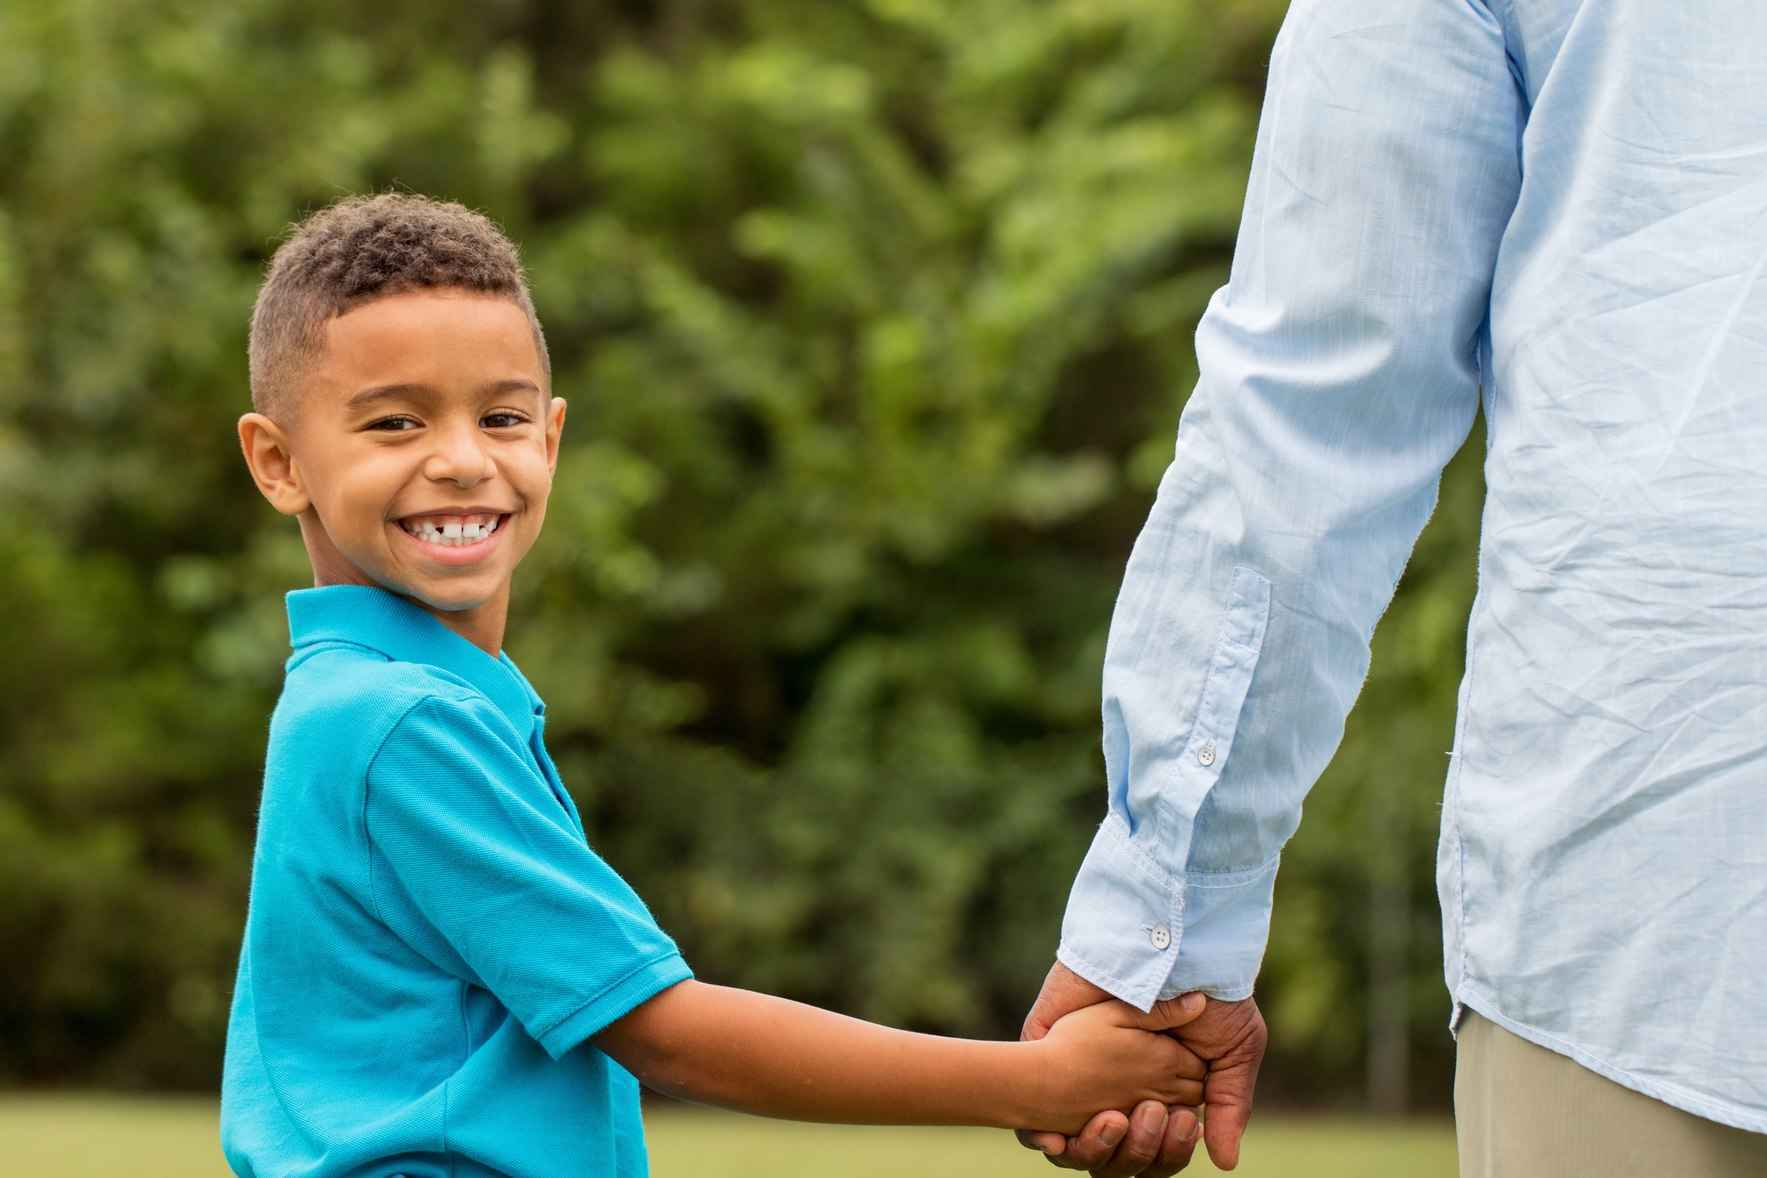 YOU can make a difference for children in foster care in our community! image